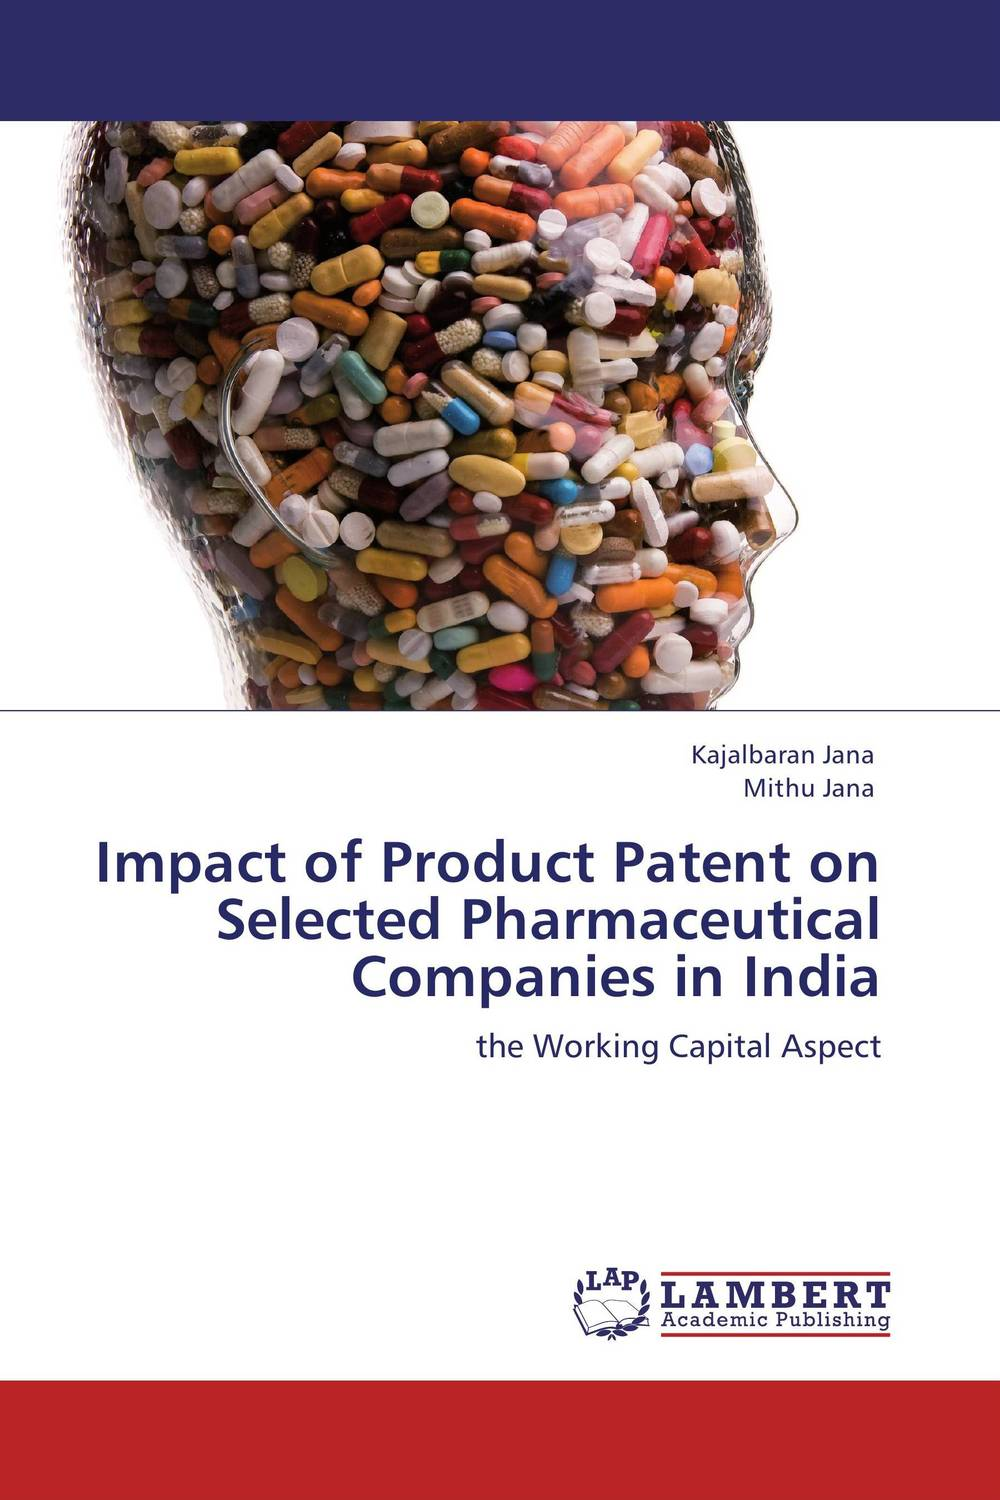 Impact of Product Patent on Selected Pharmaceutical Companies in India the impact on section 3 d on indian pharmaceutical industry